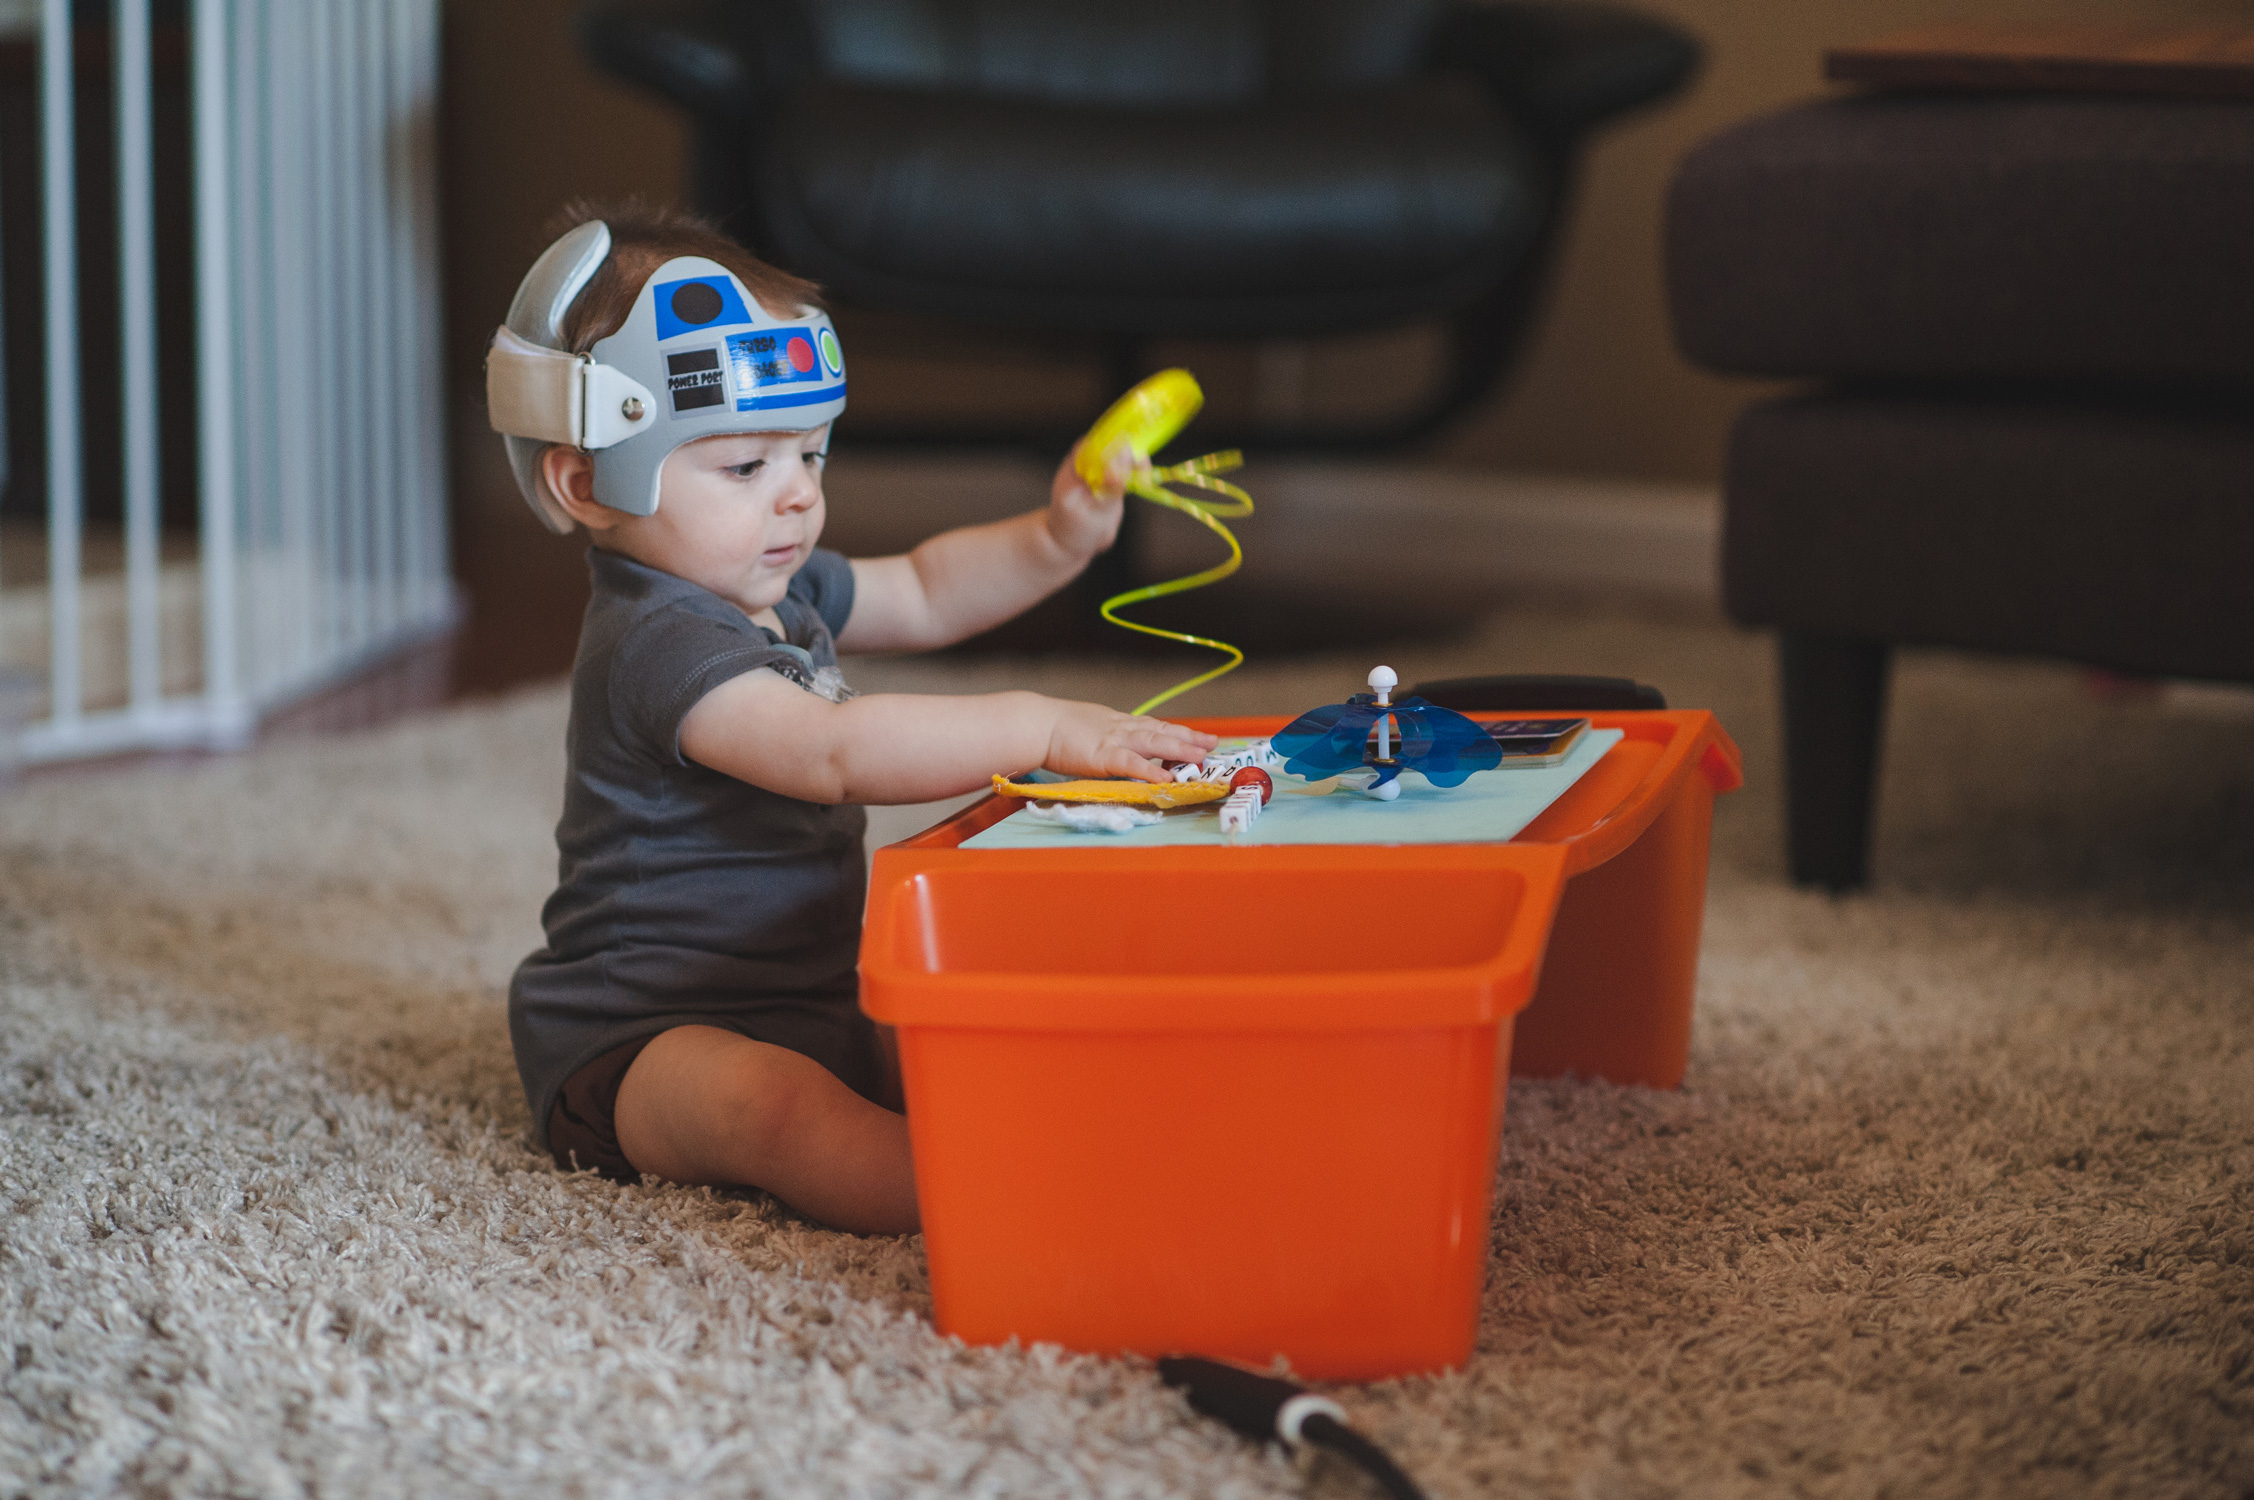 Baby with cranial helmet decorated like R2D2 from Star Wars playing with sensory table.